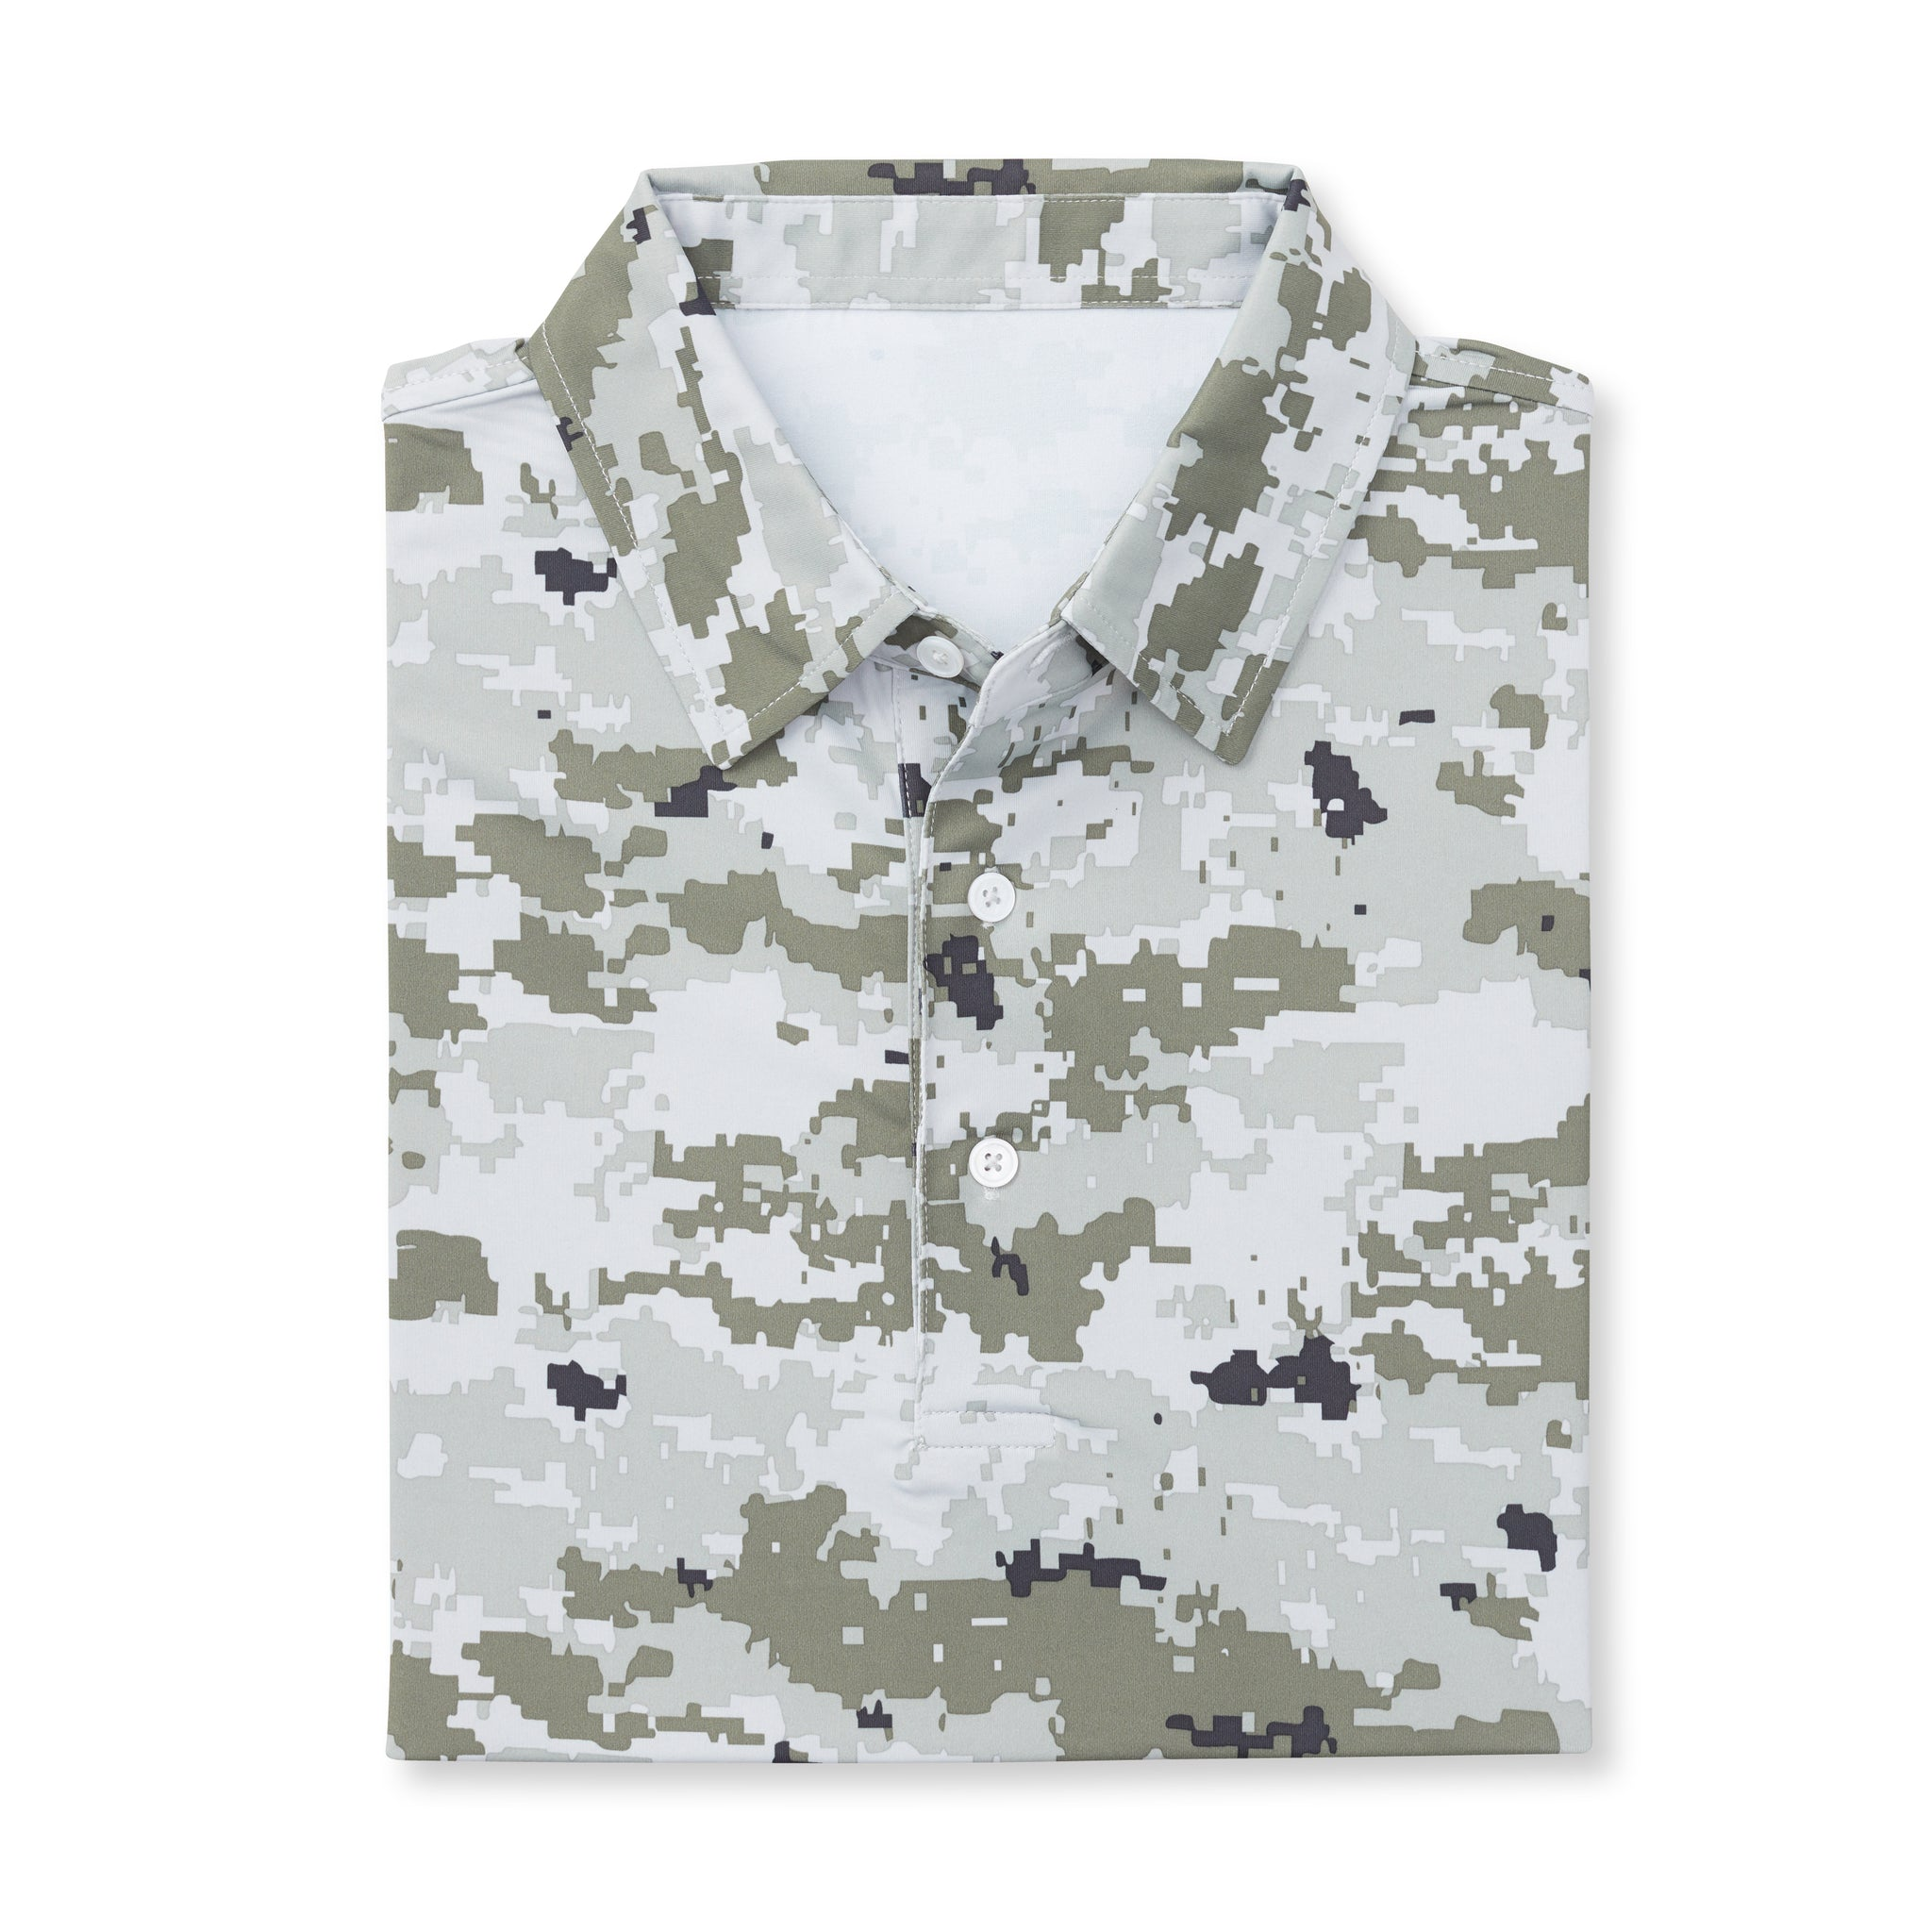 Digital Camo Short Sleeve - Desert IS46002